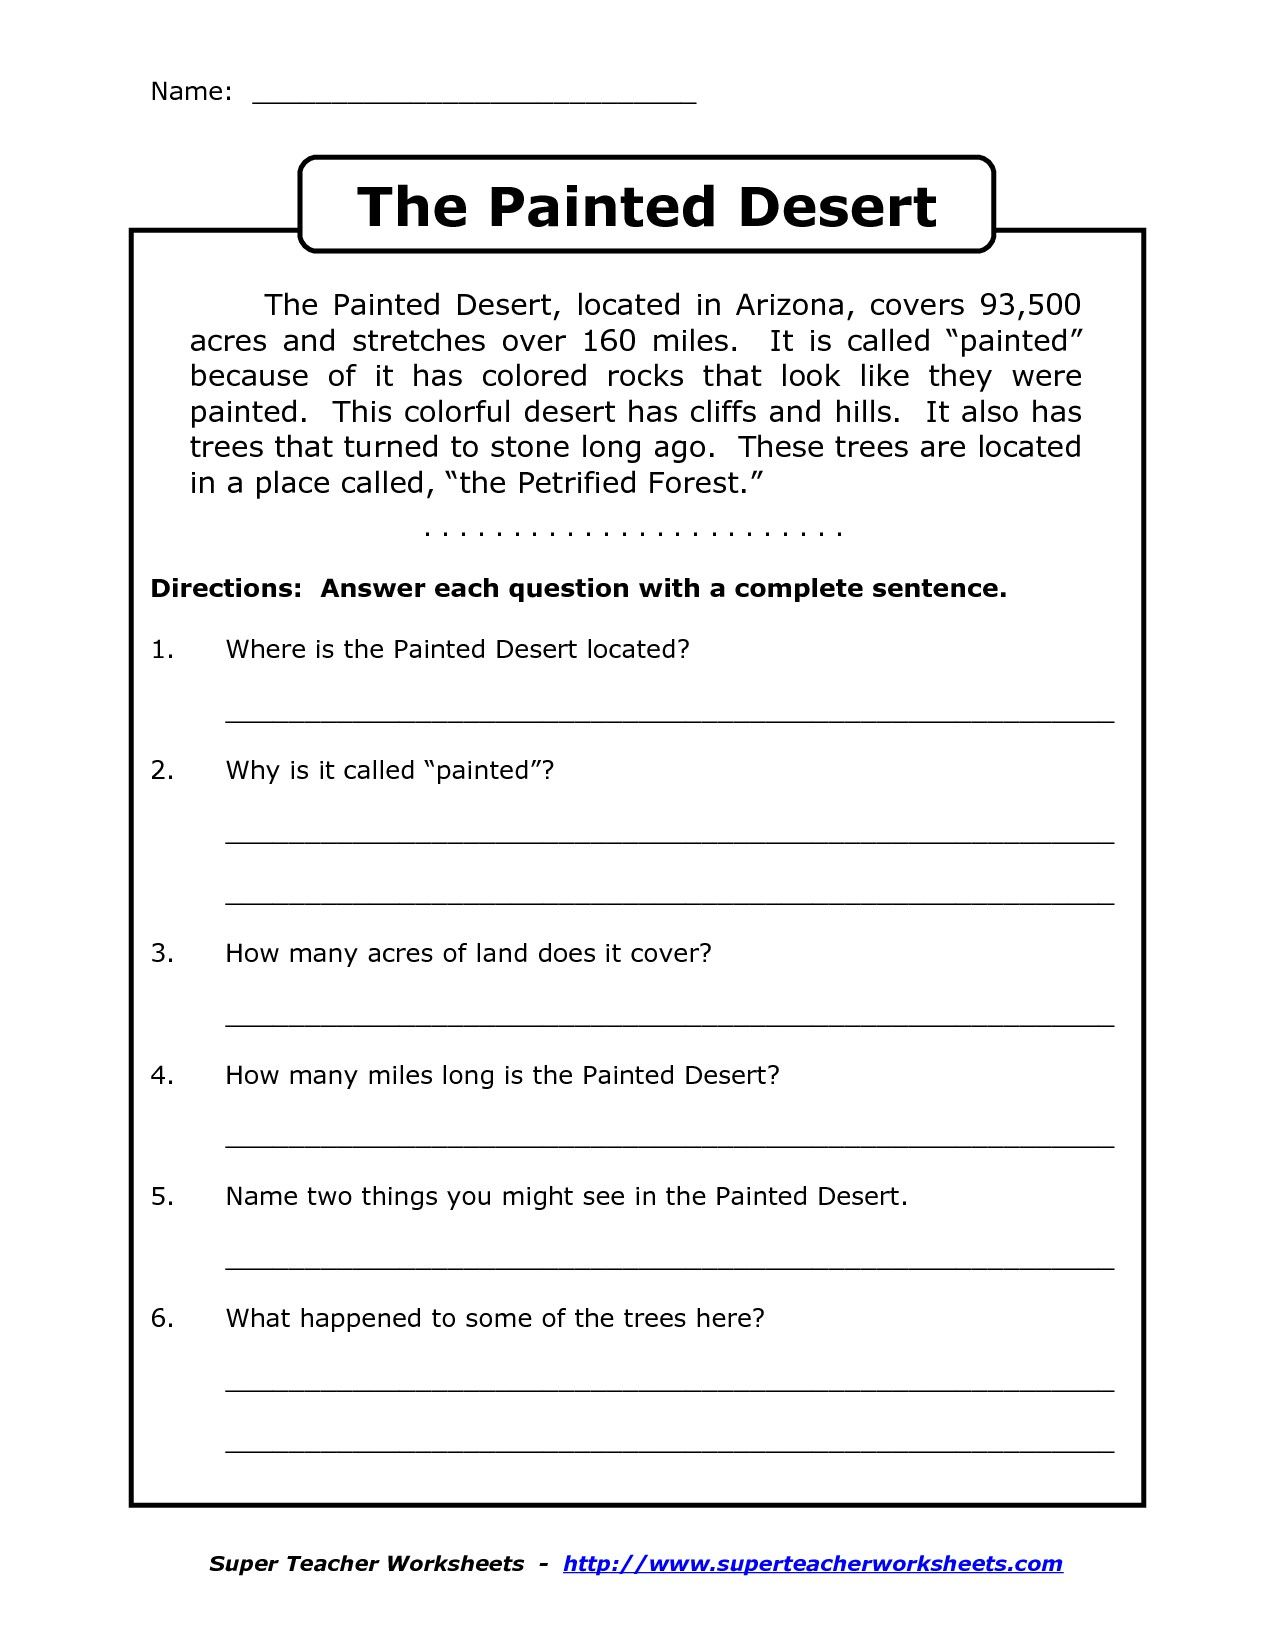 Worksheet Grade 2 Reading Comprehension Worksheets grade 2 reading comprehension worksheets free coffemix worksheet coffemix